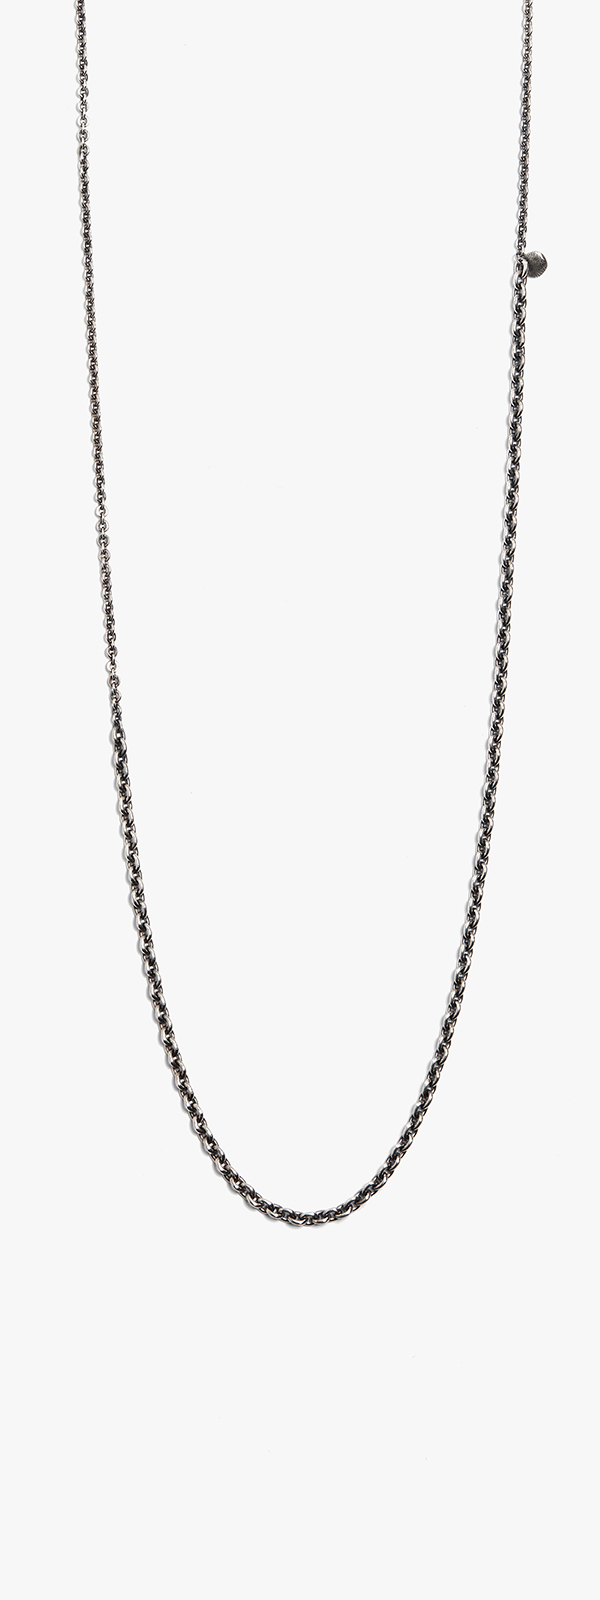 Small / Medium Cable Necklace